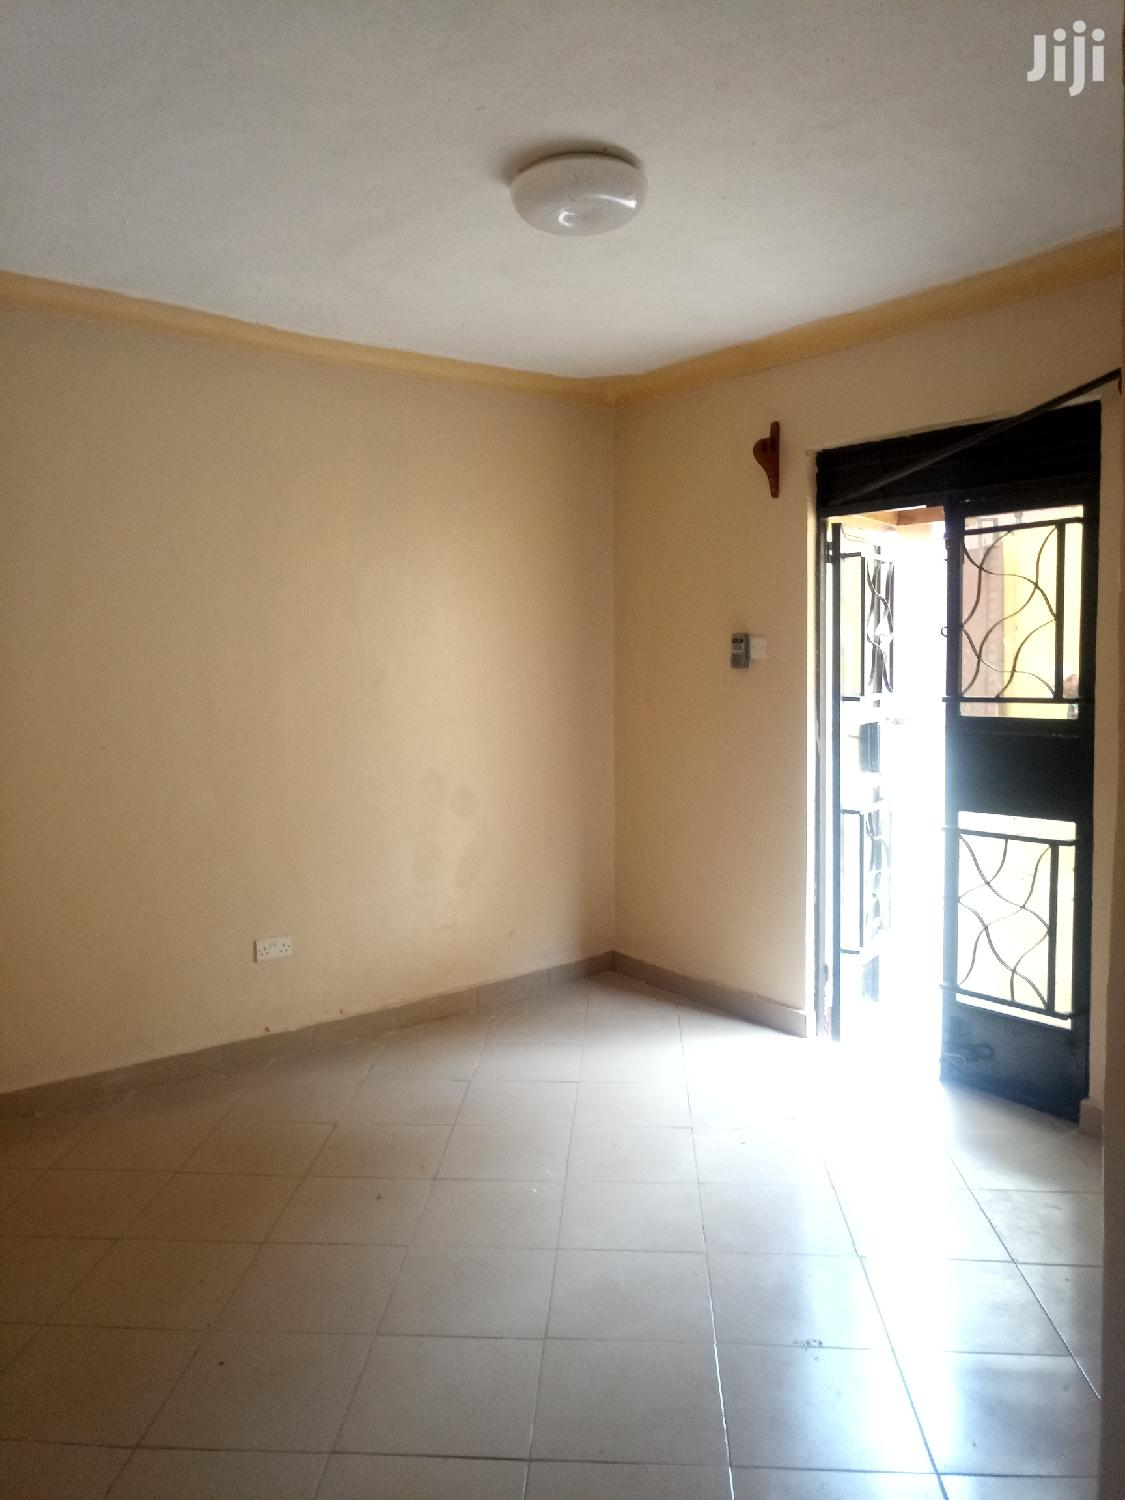 Clean Double Rooms for Rent in Bukoto | Houses & Apartments For Rent for sale in Kampala, Central Region, Uganda